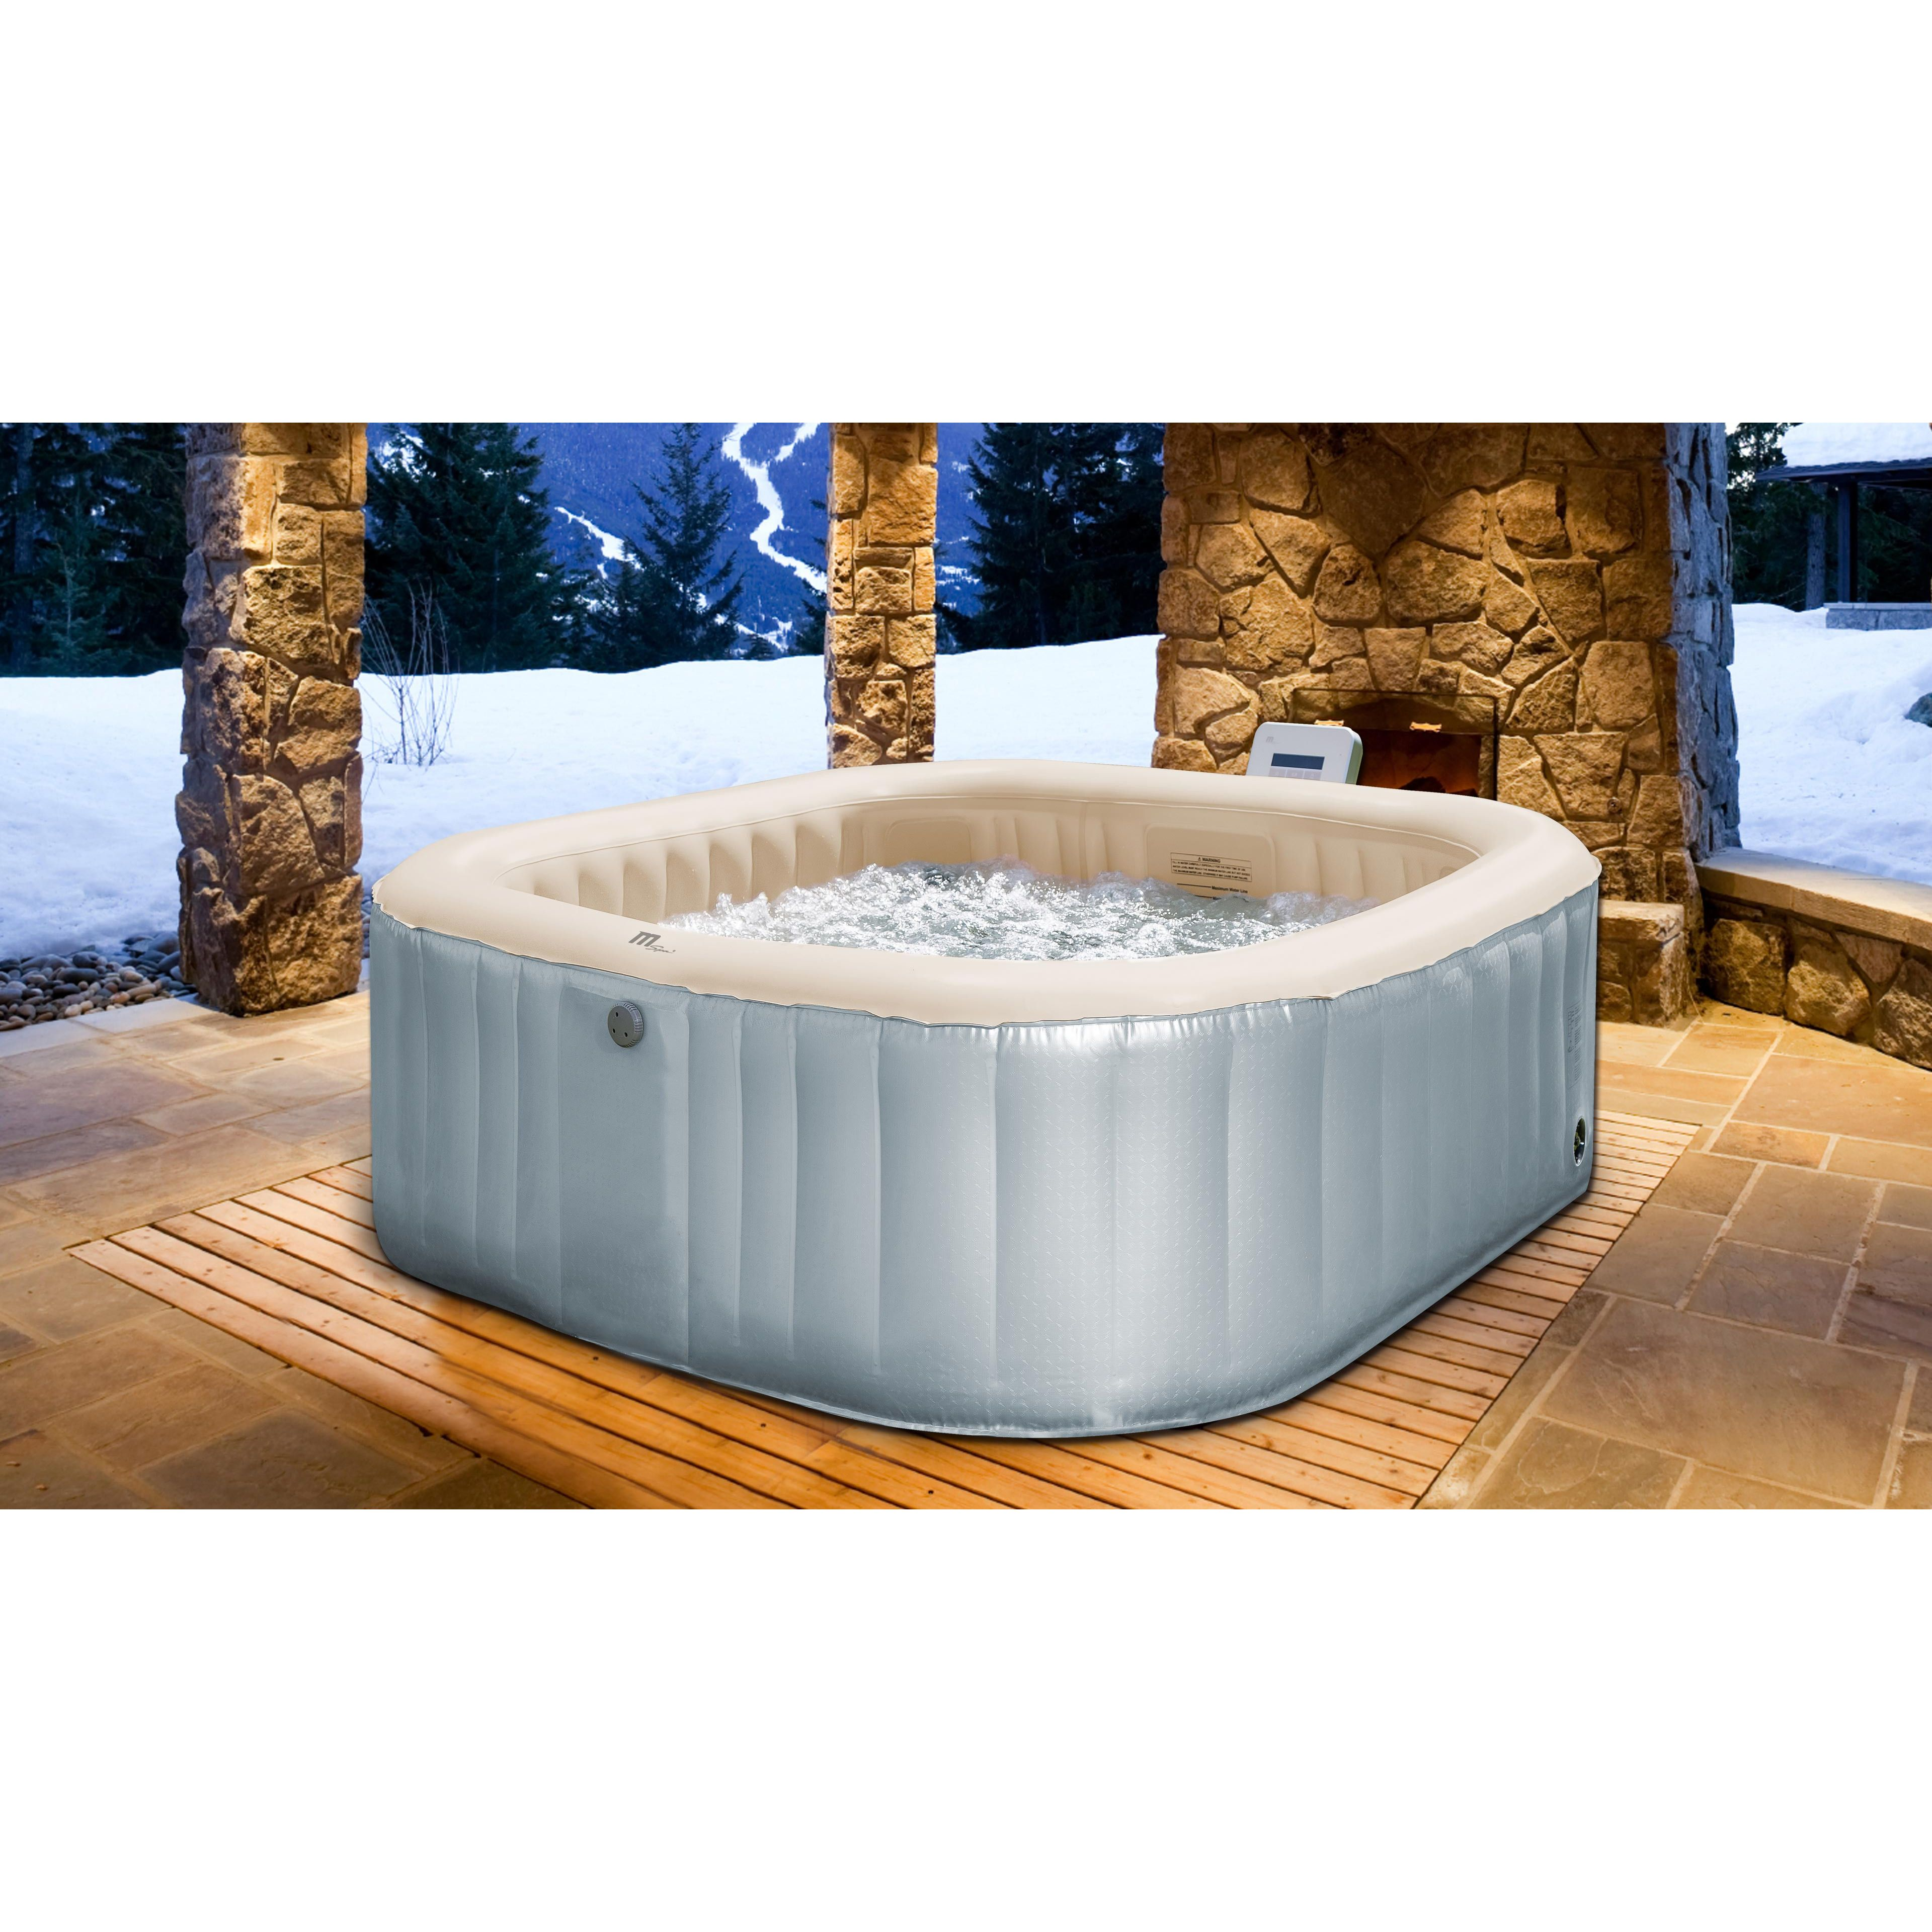 Spa Exterieur 6 Places Spa Gonflable 6 Places Jacuzzi Gonflable